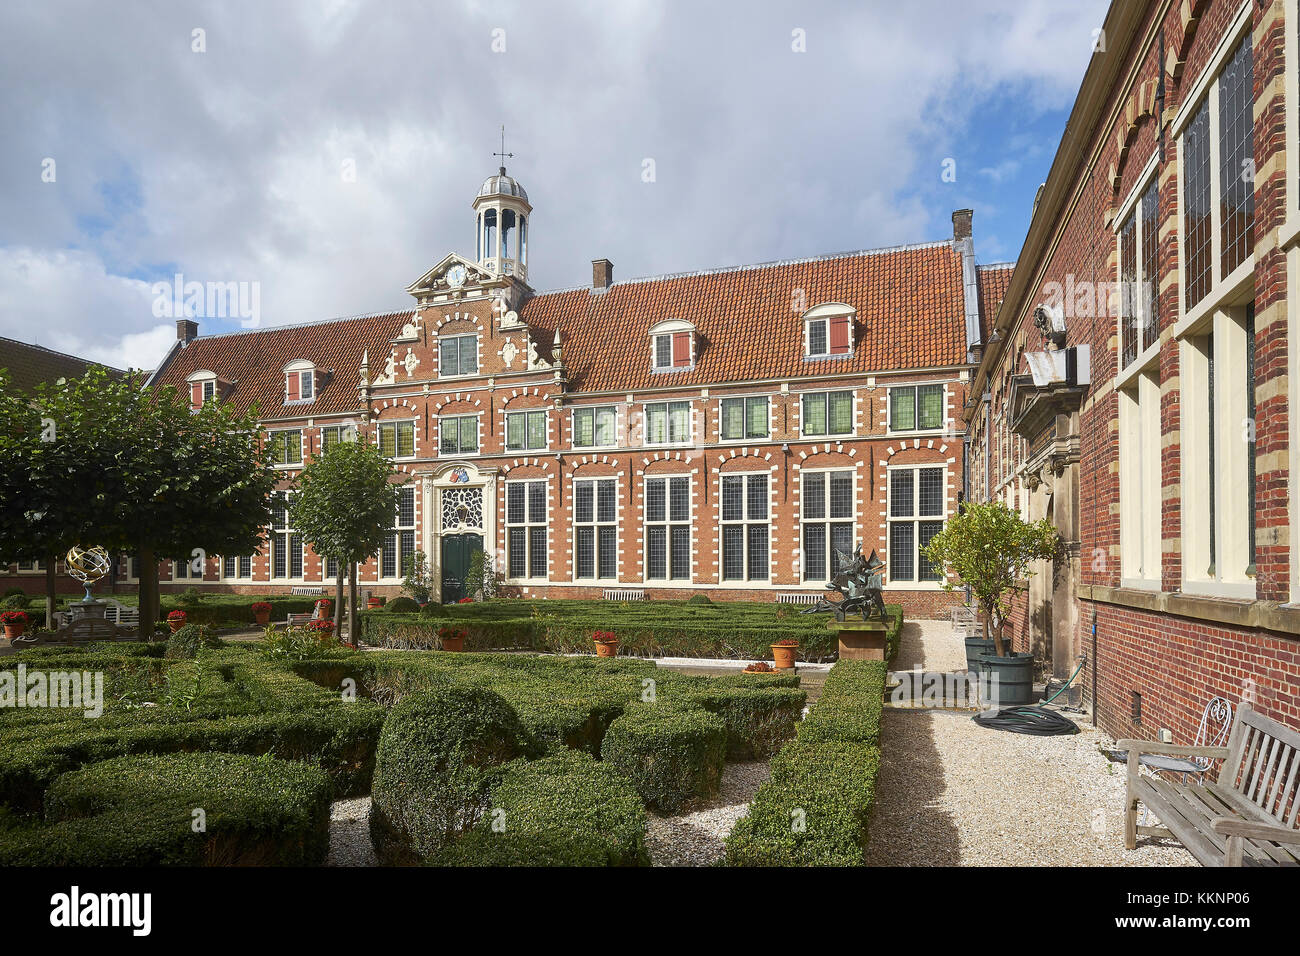 Courtyard of the Franz Hals Museum in Haarlem, North Holland, Netherlands - Stock Image